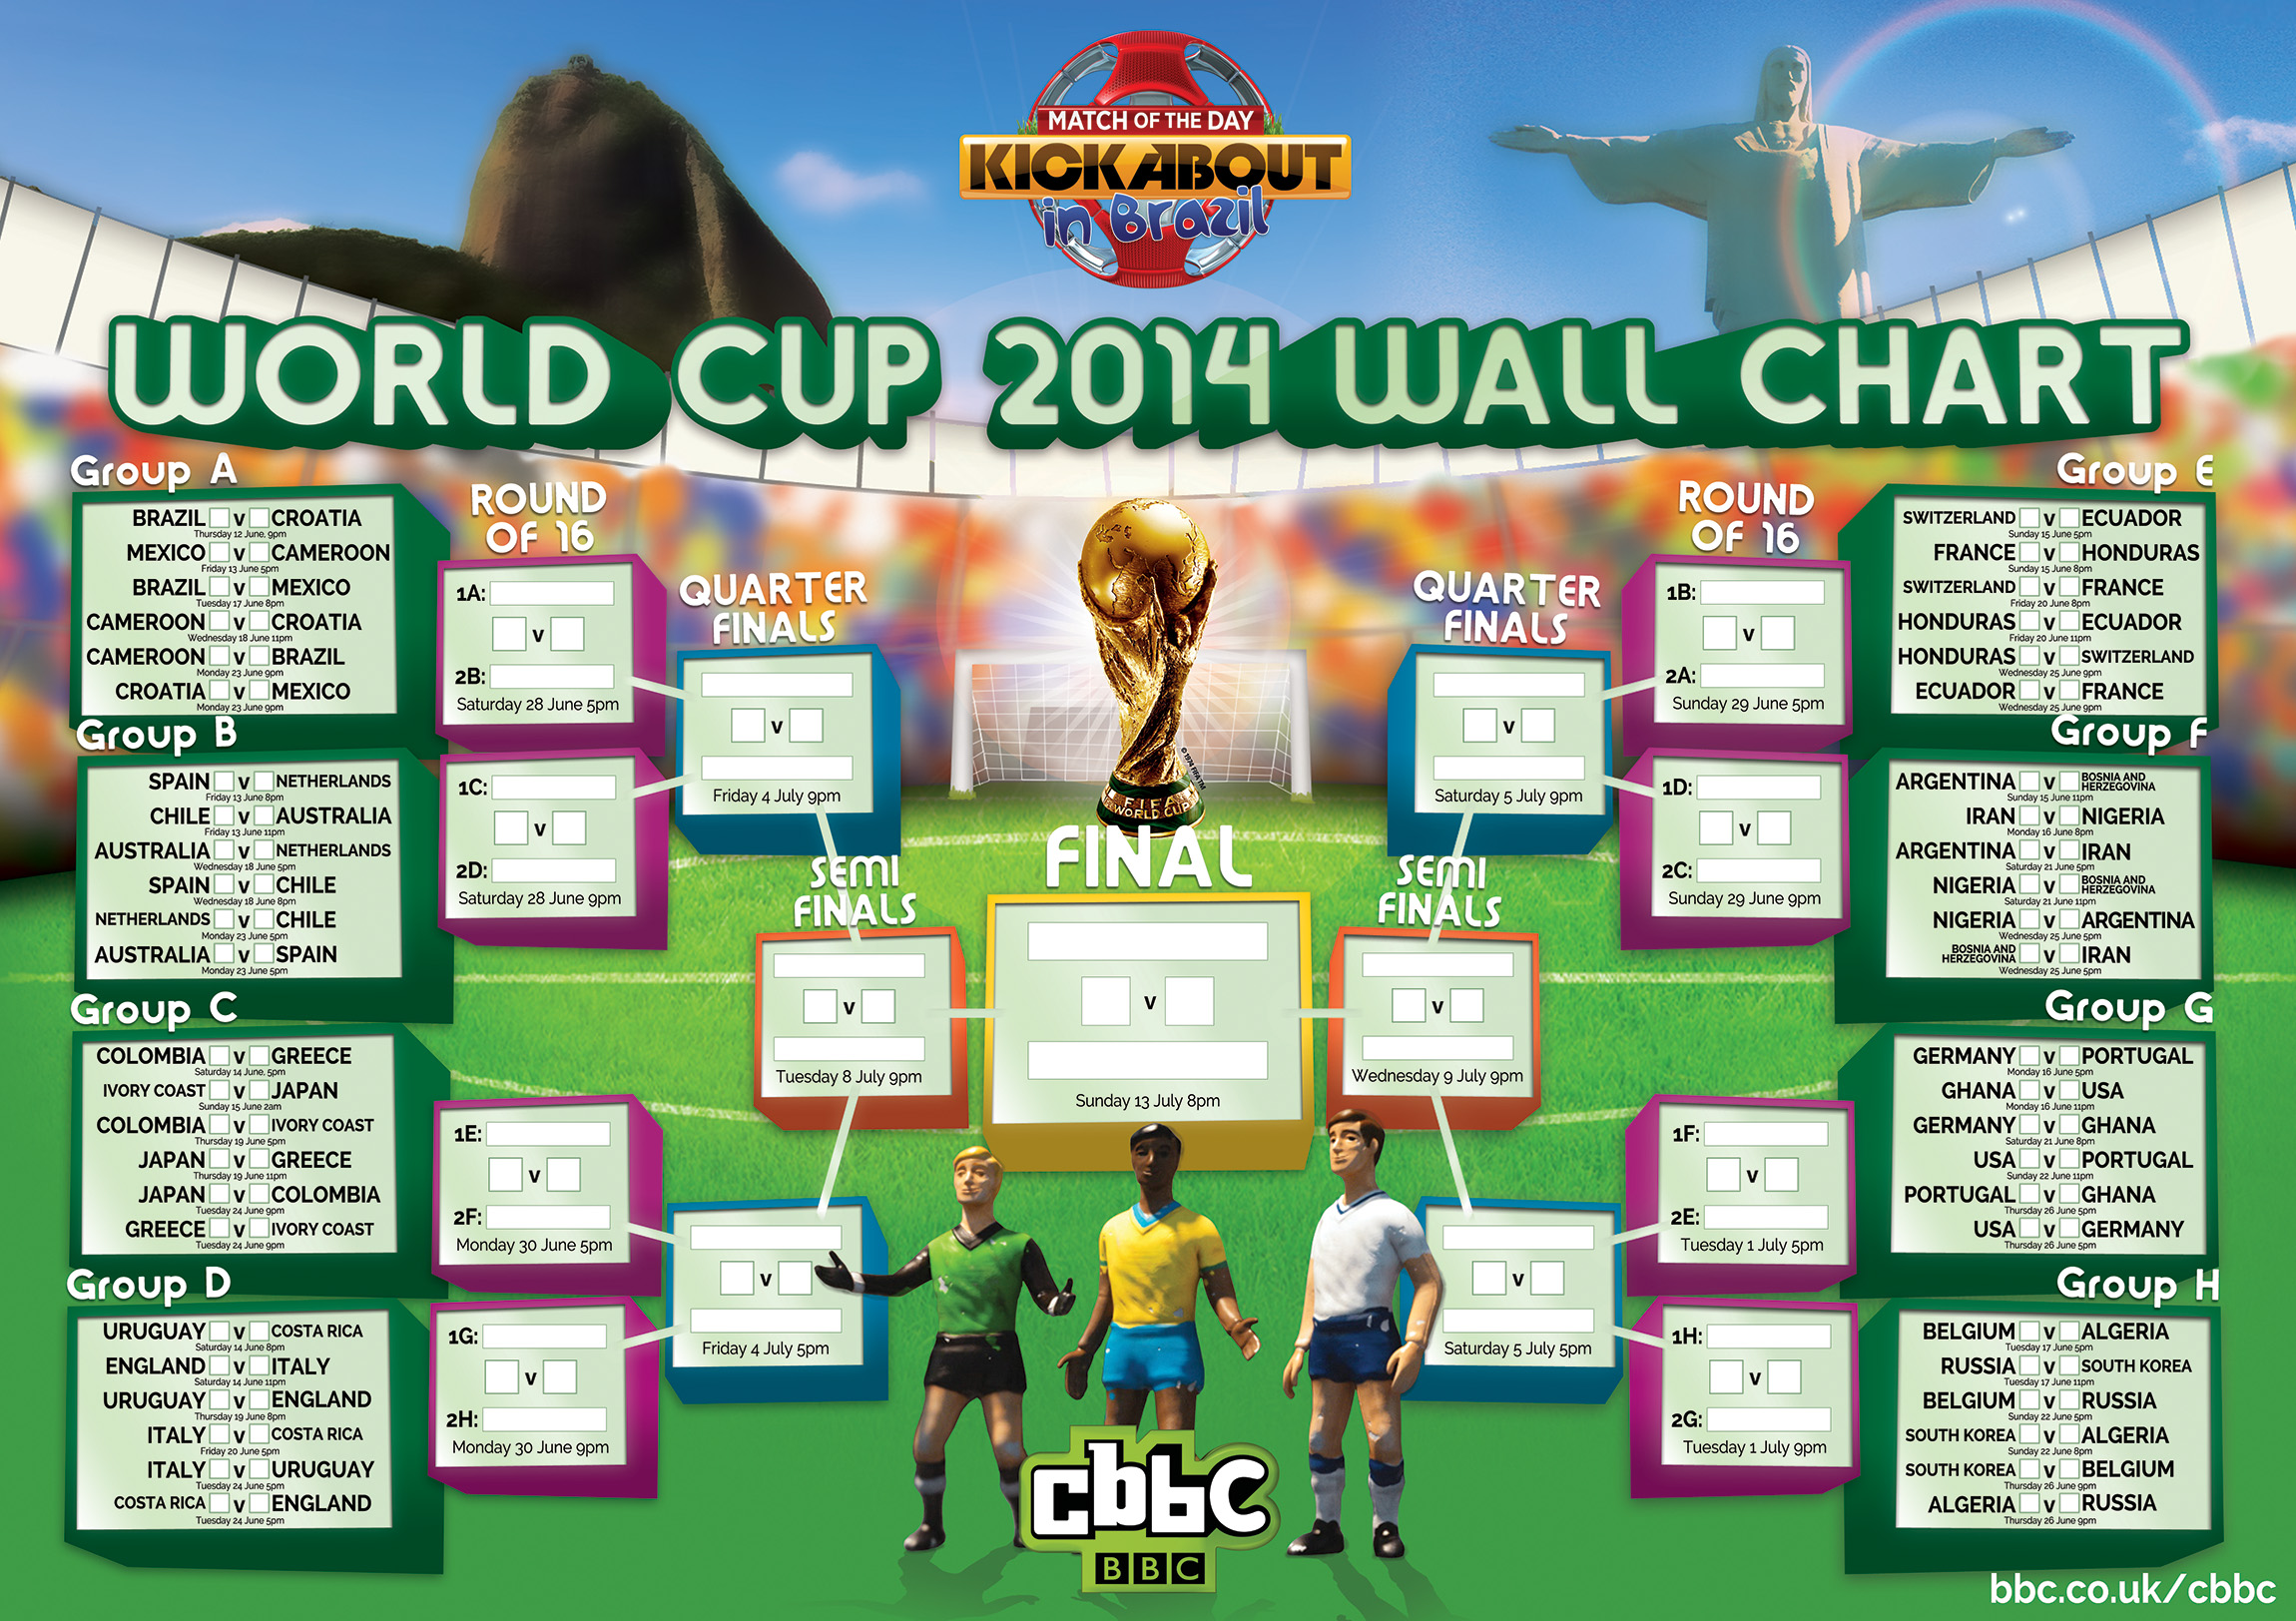 bbc world cup chart